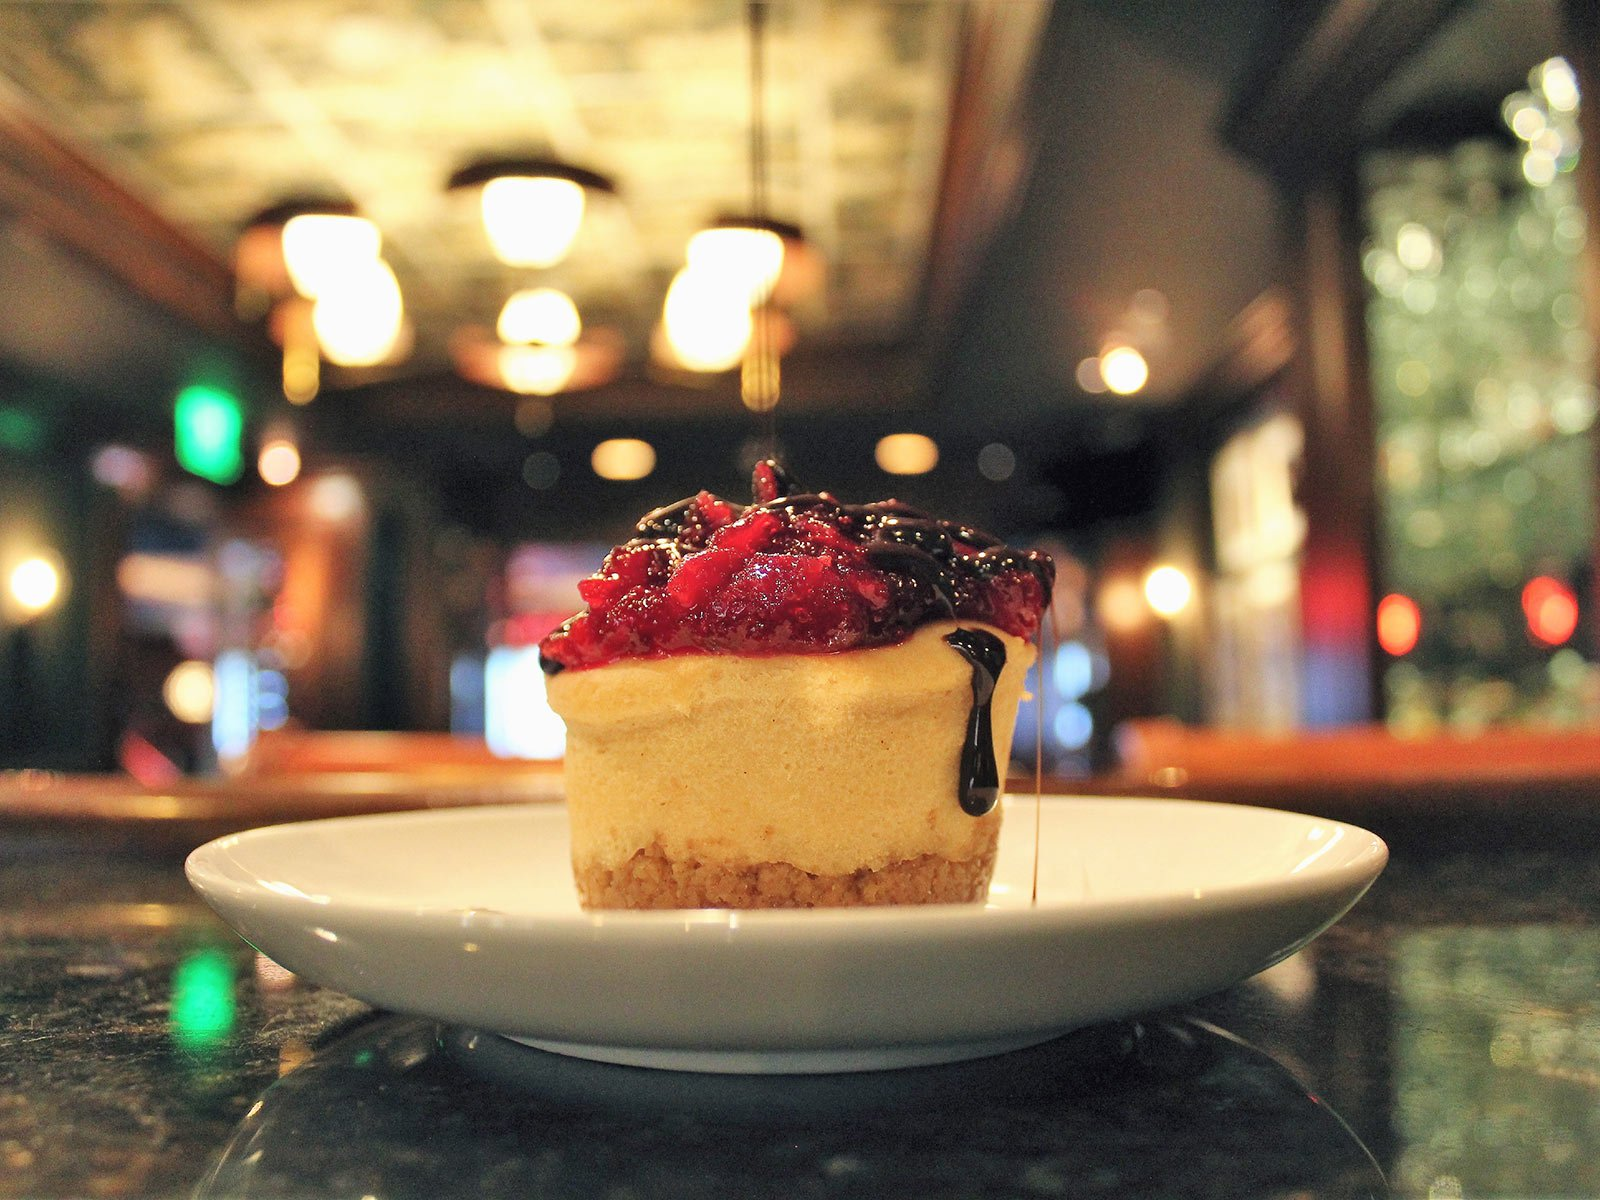 Delicious Cheesecake topped with berry compote